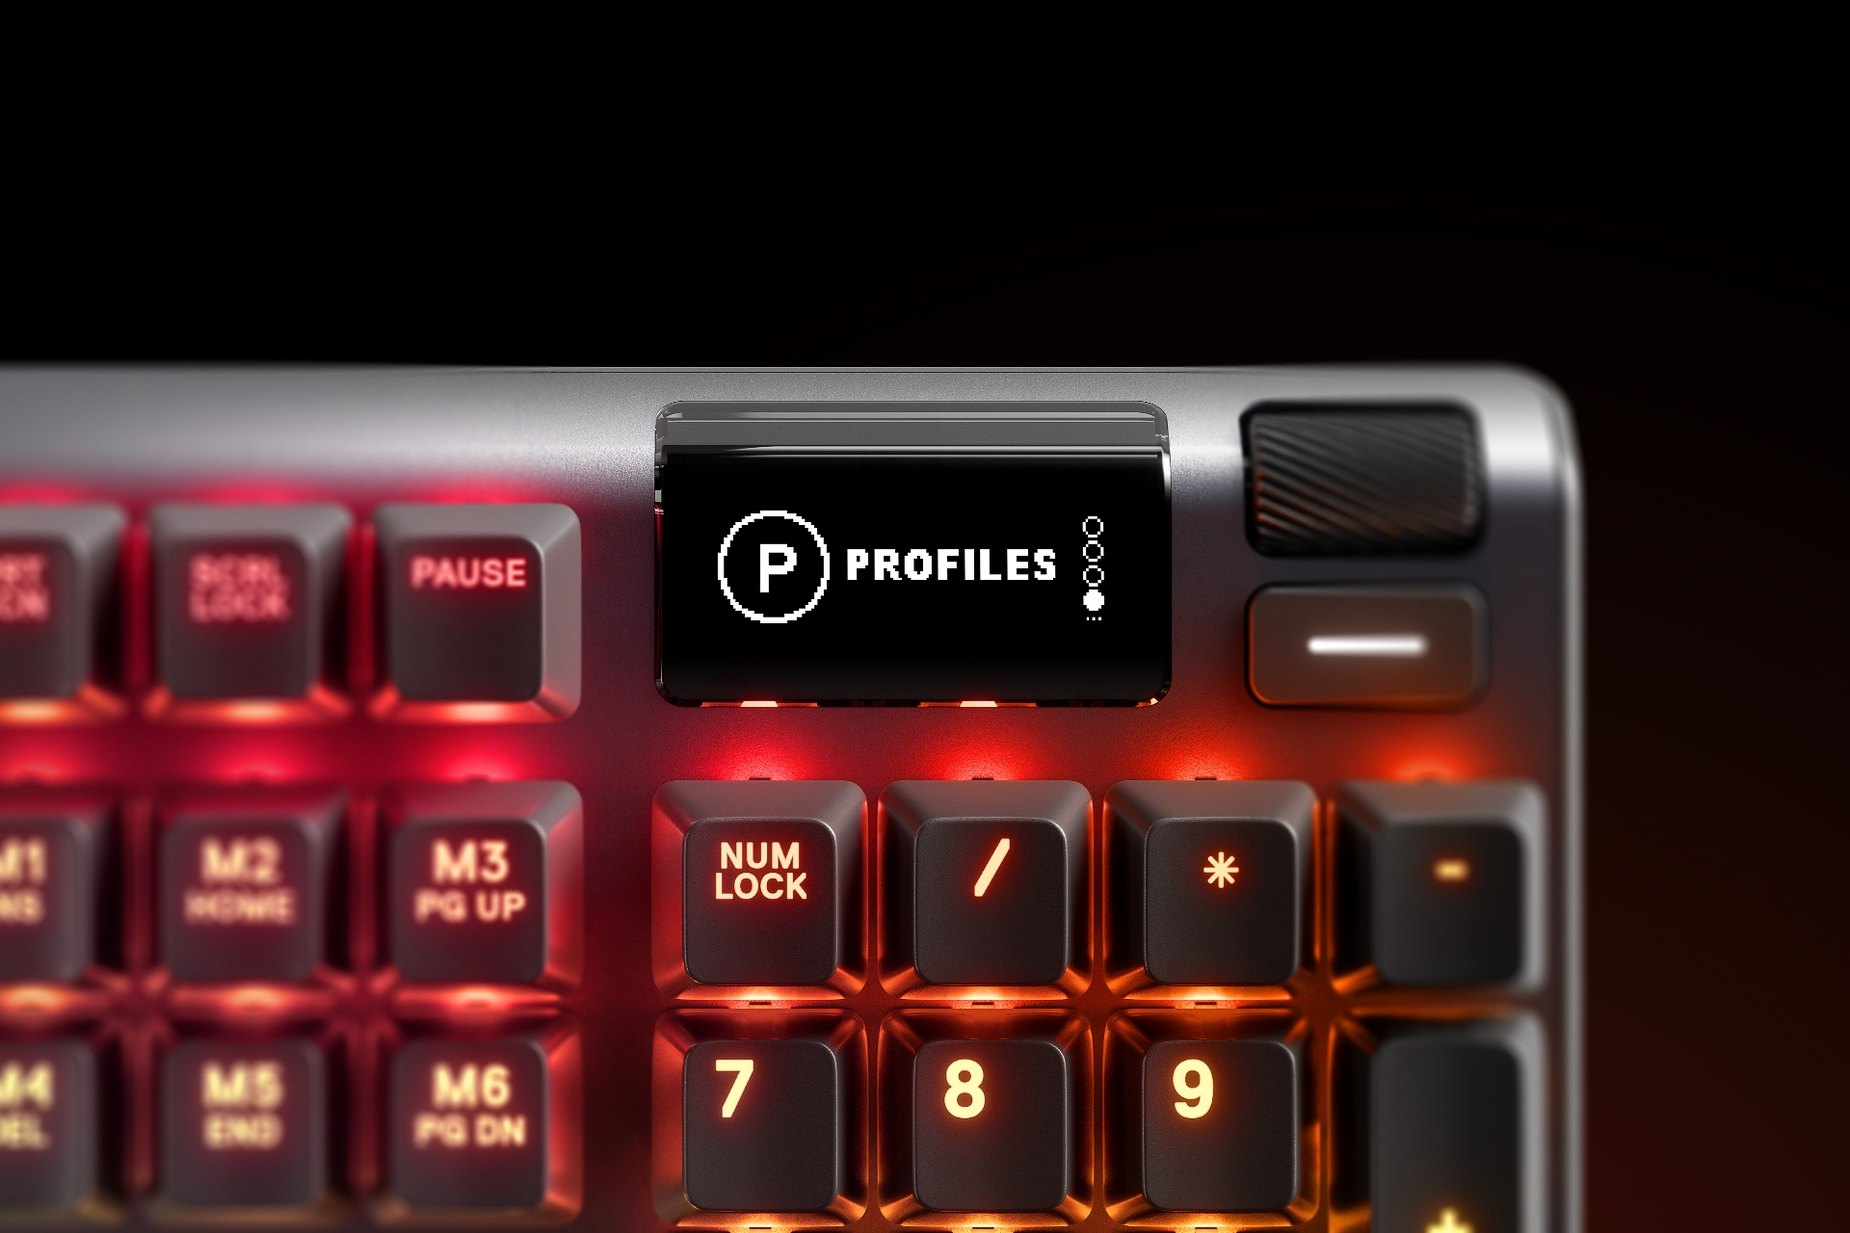 Zoomed in view of the multimedia and settings controls/volume roller on the Thai-Apex 7 (Red Switch) gaming keyboard